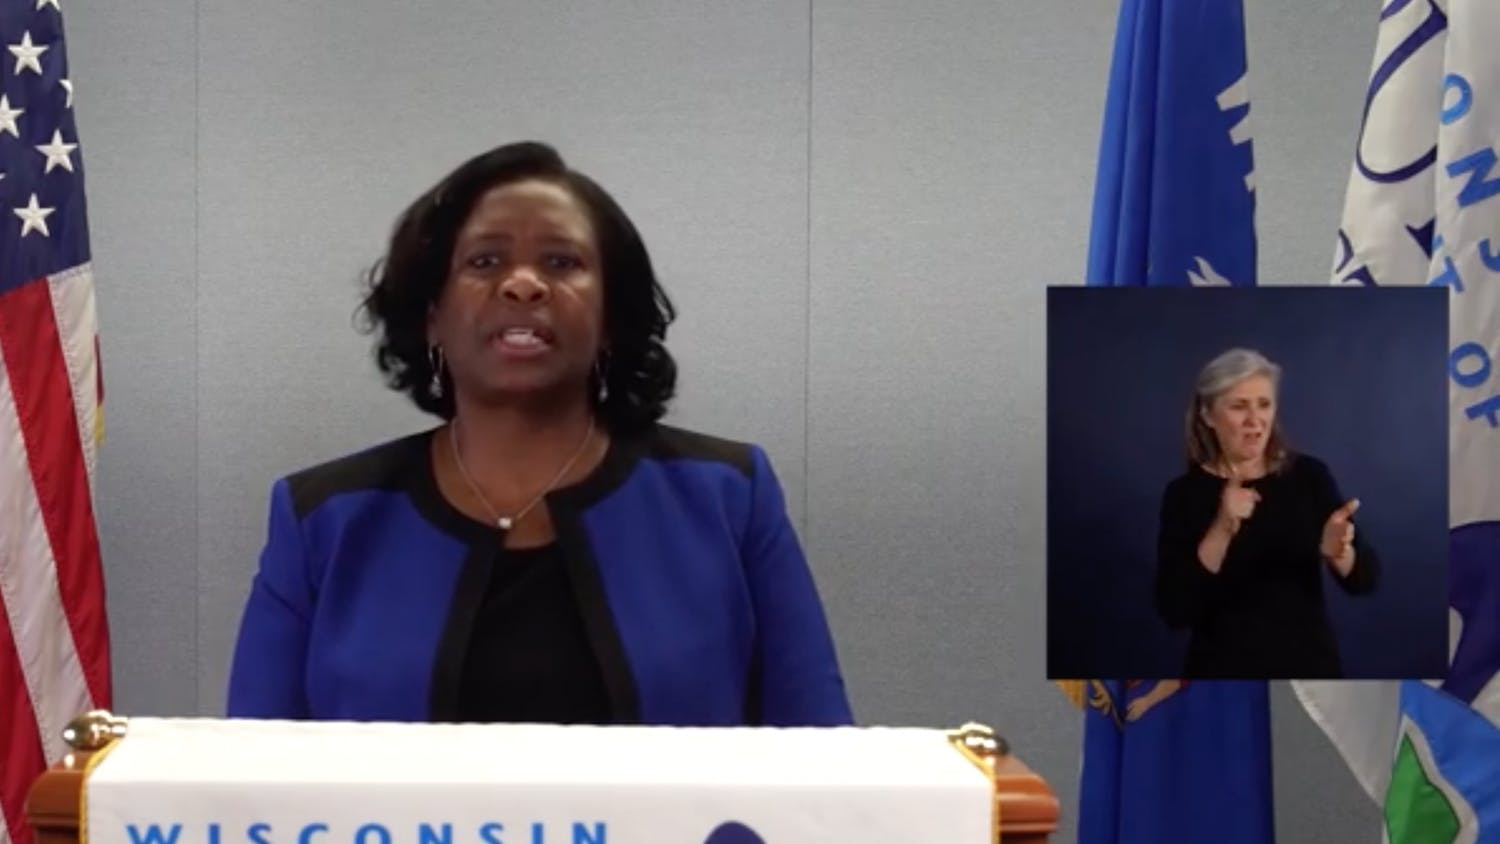 The superintendent discussed disparities in internet access, especially for children of color and children in poverty, as well as funding for special education and mental health services.